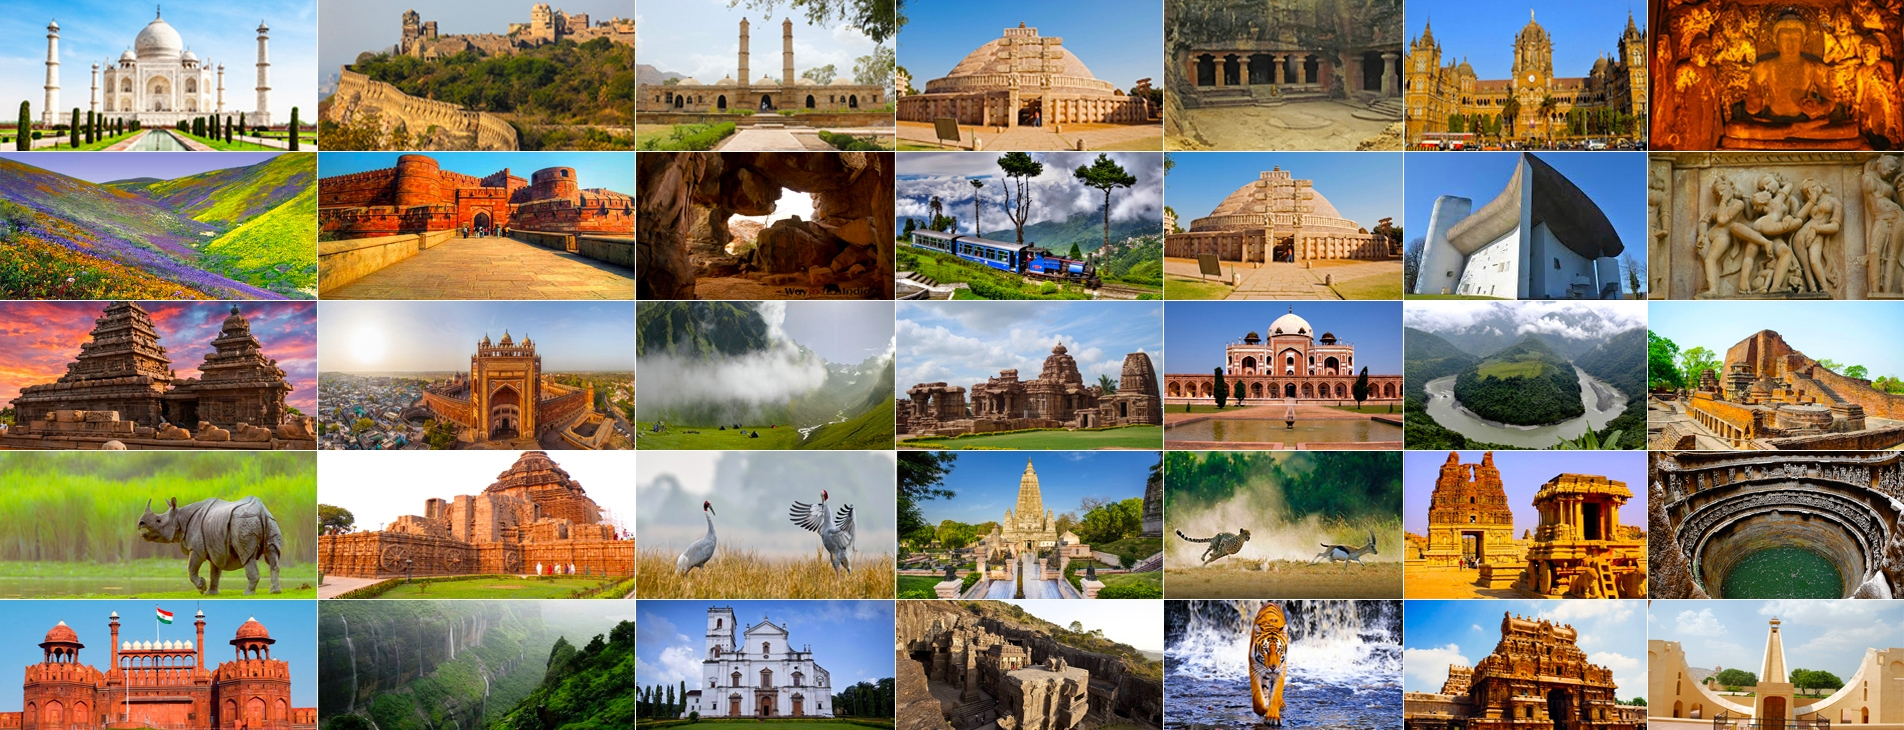 Rajasthan Forts and Palaces (@rajasthanfnp) Cover Image